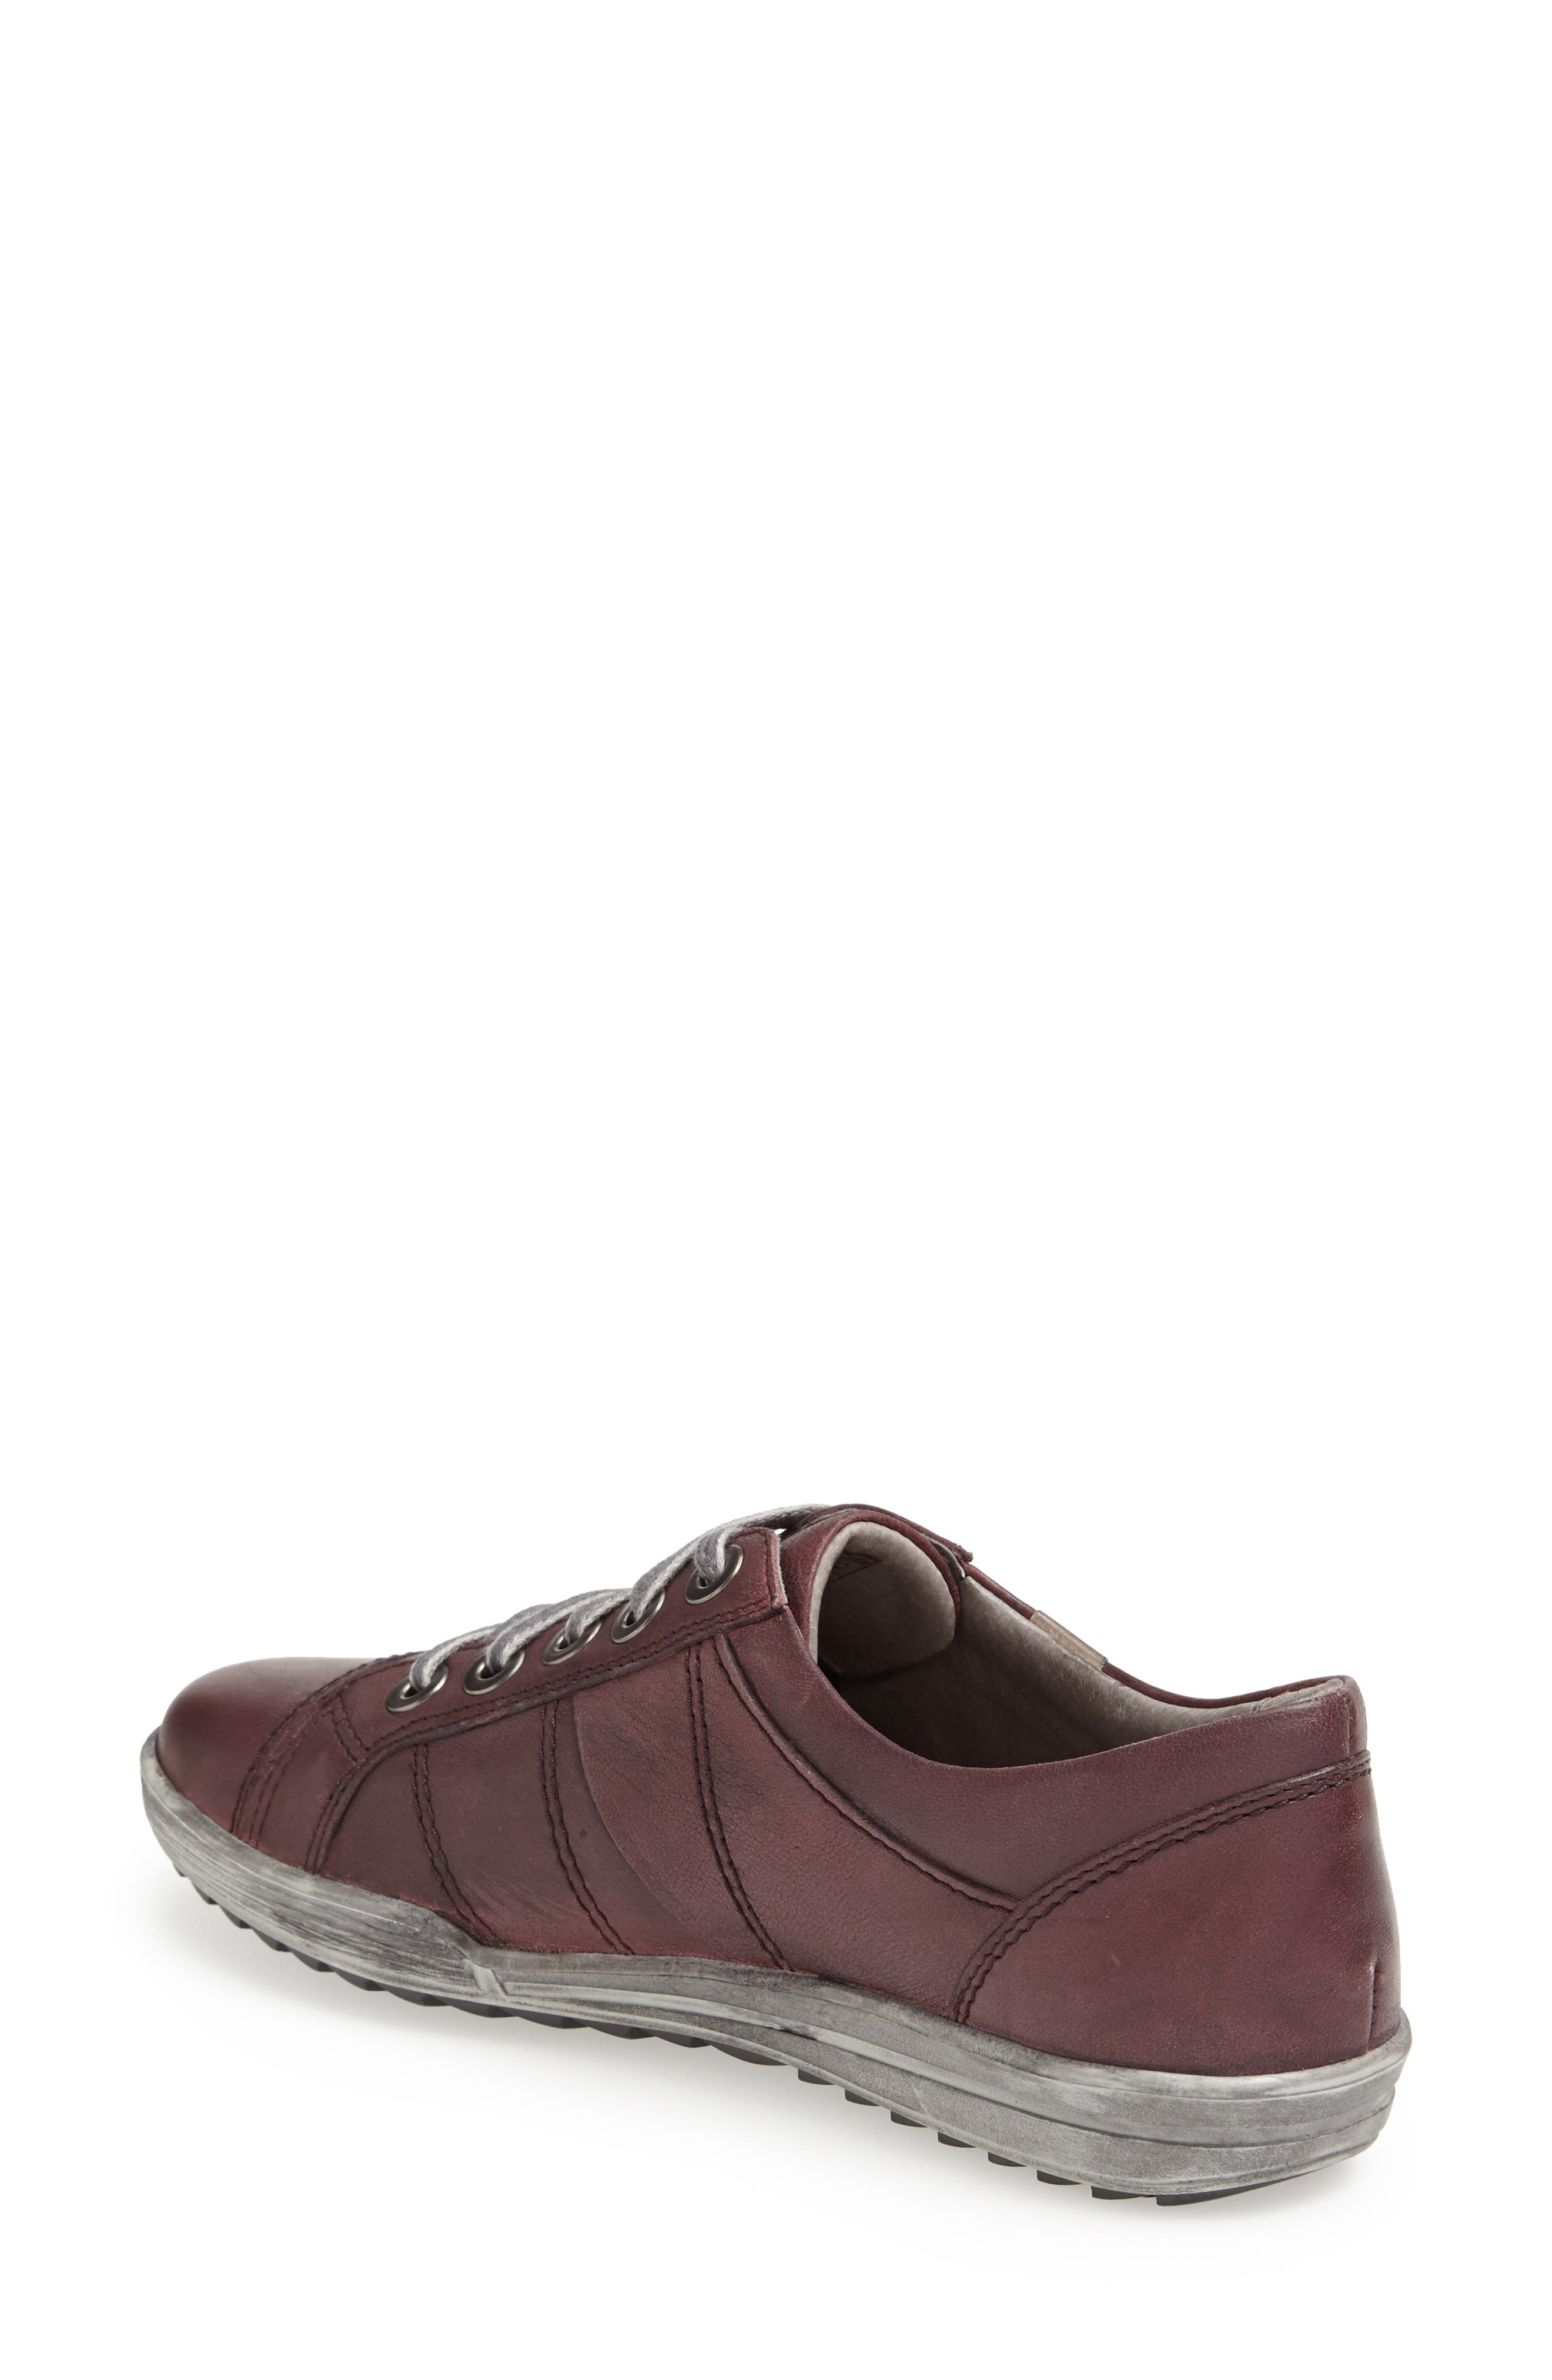 'Dany 05' Leather Sneaker,                             Alternate thumbnail 26, color,